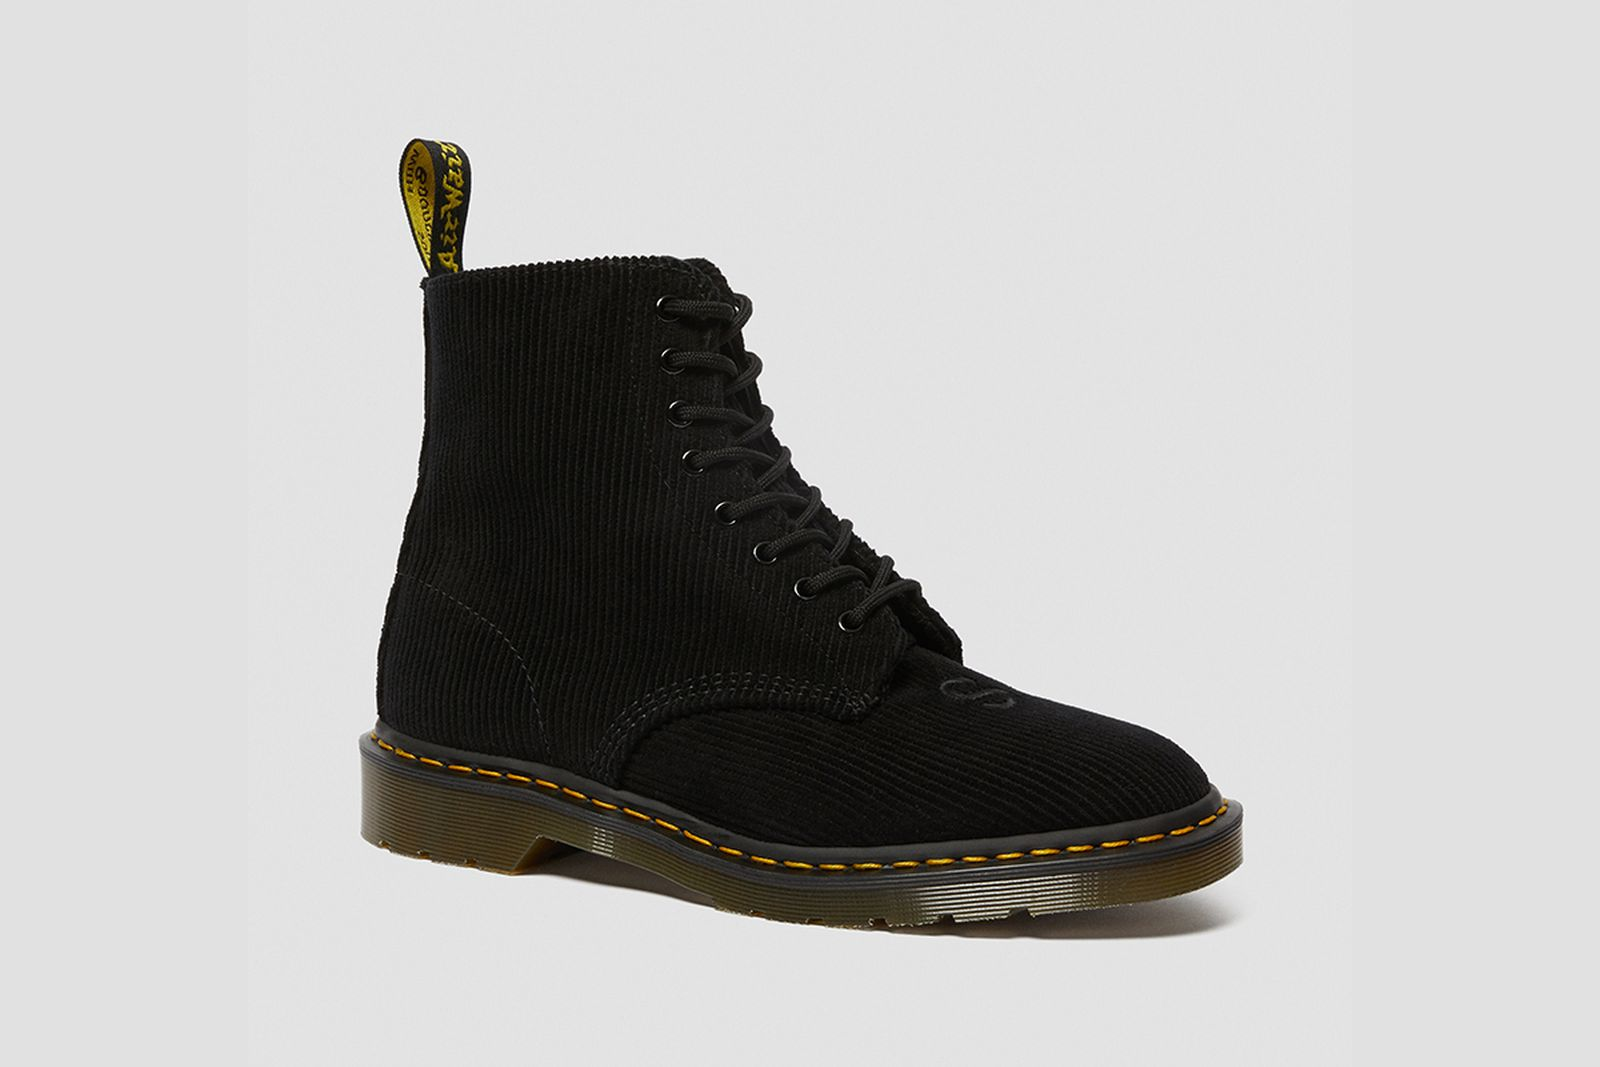 undercover-dr-martens-1460-release-date-price-05